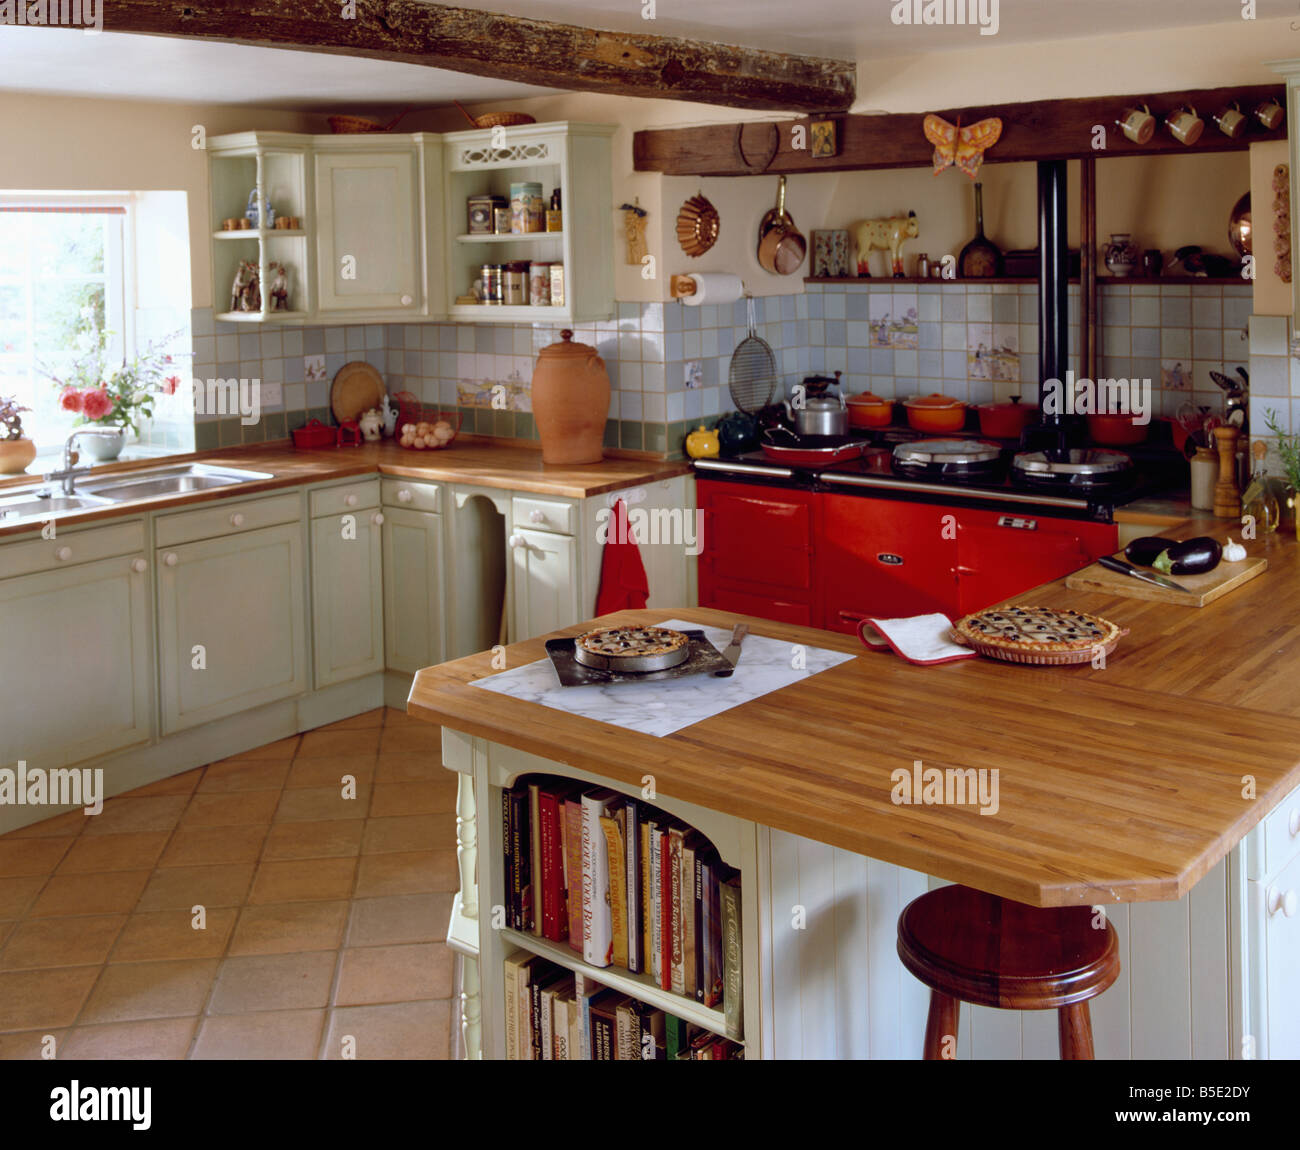 Island Unit With Wooden Worktop In Traditional Country